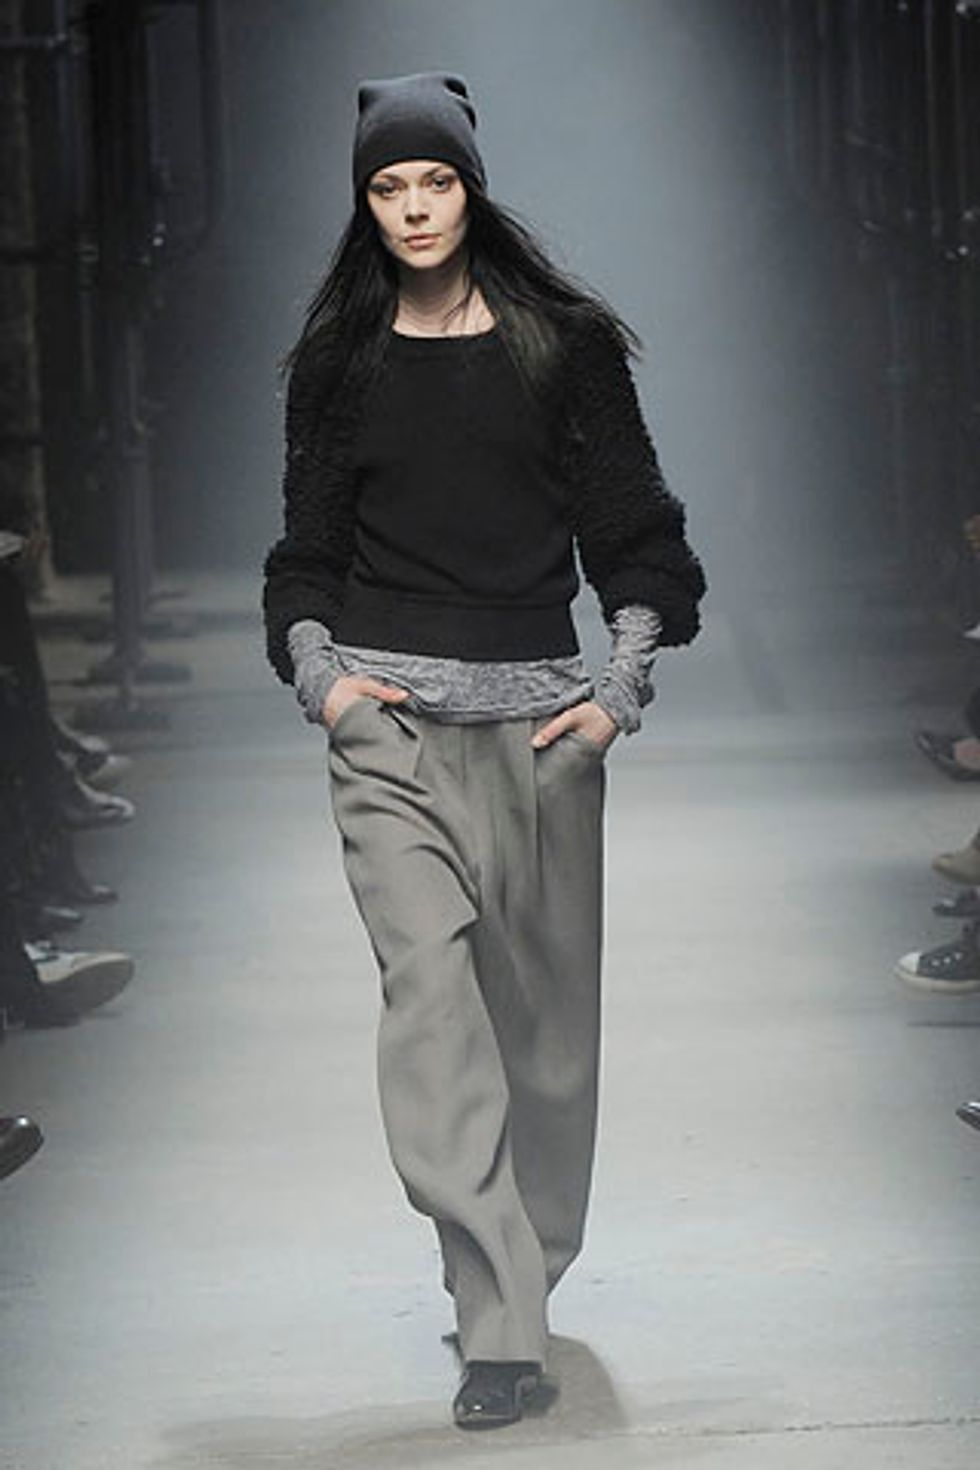 Some Fun American Sportswear (Among the Rock 'n' Roll Separates) at Alexander Wang